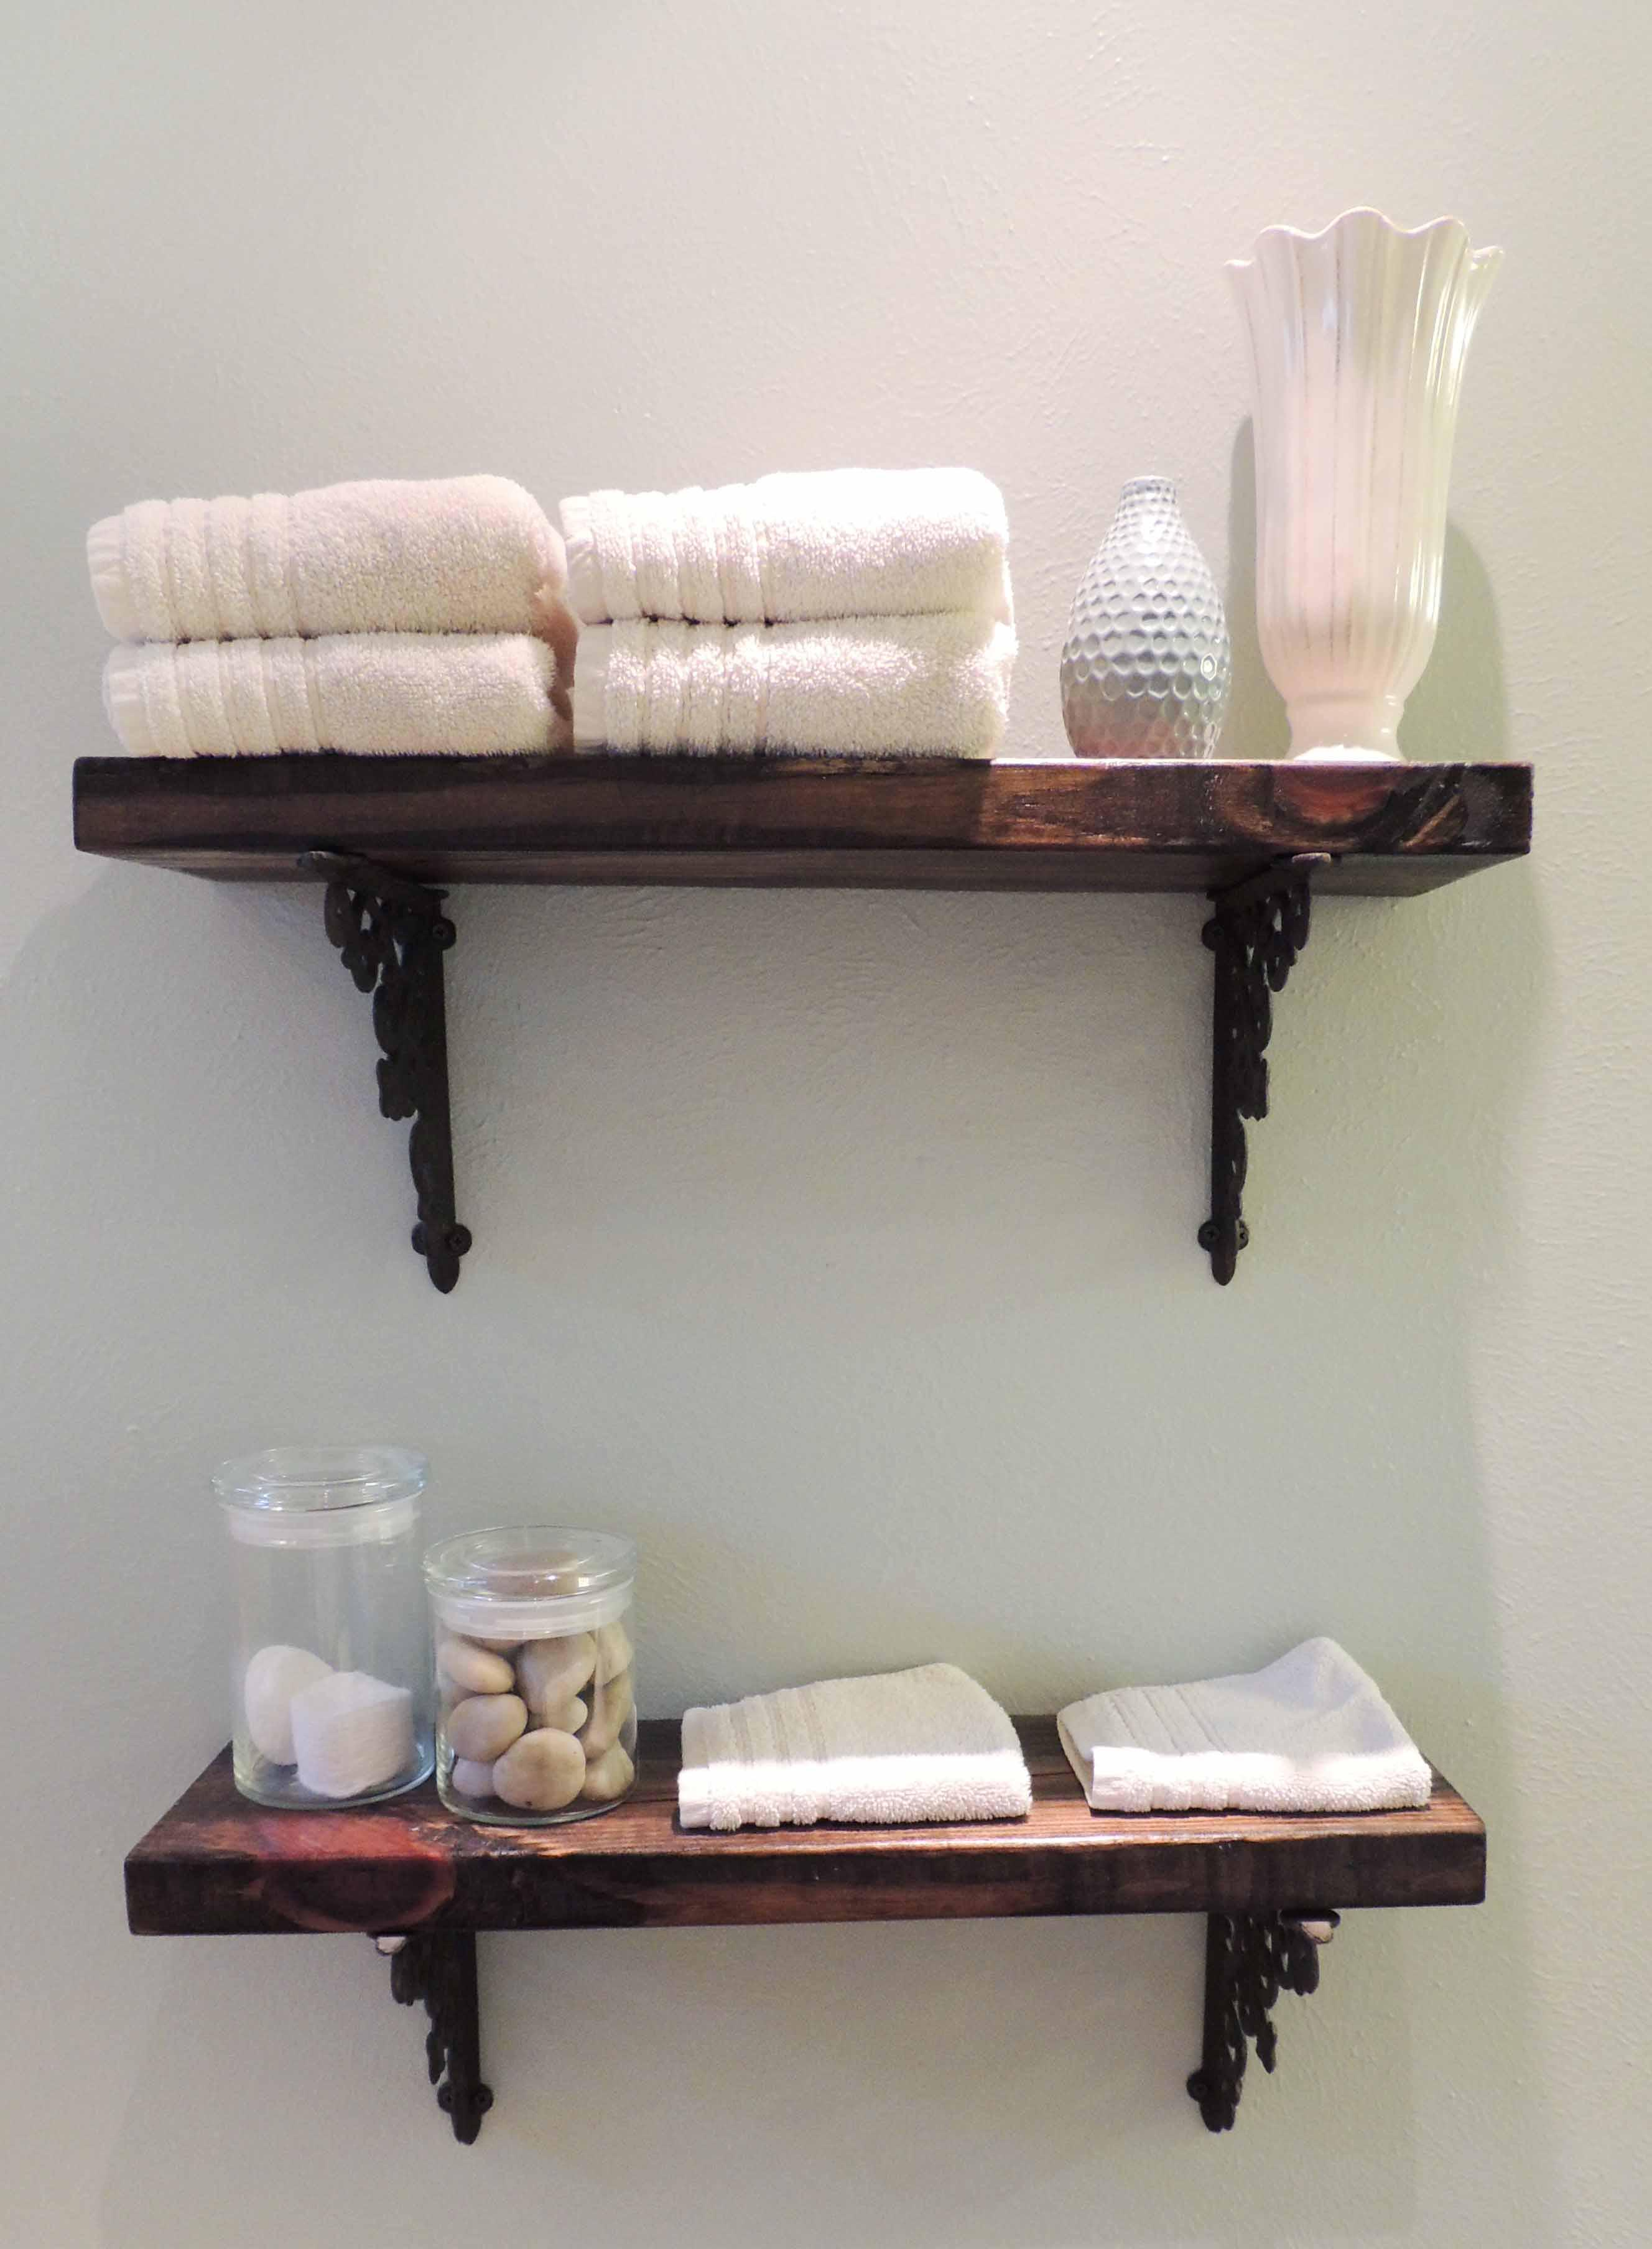 Bathroom Wall Shelves and Storage